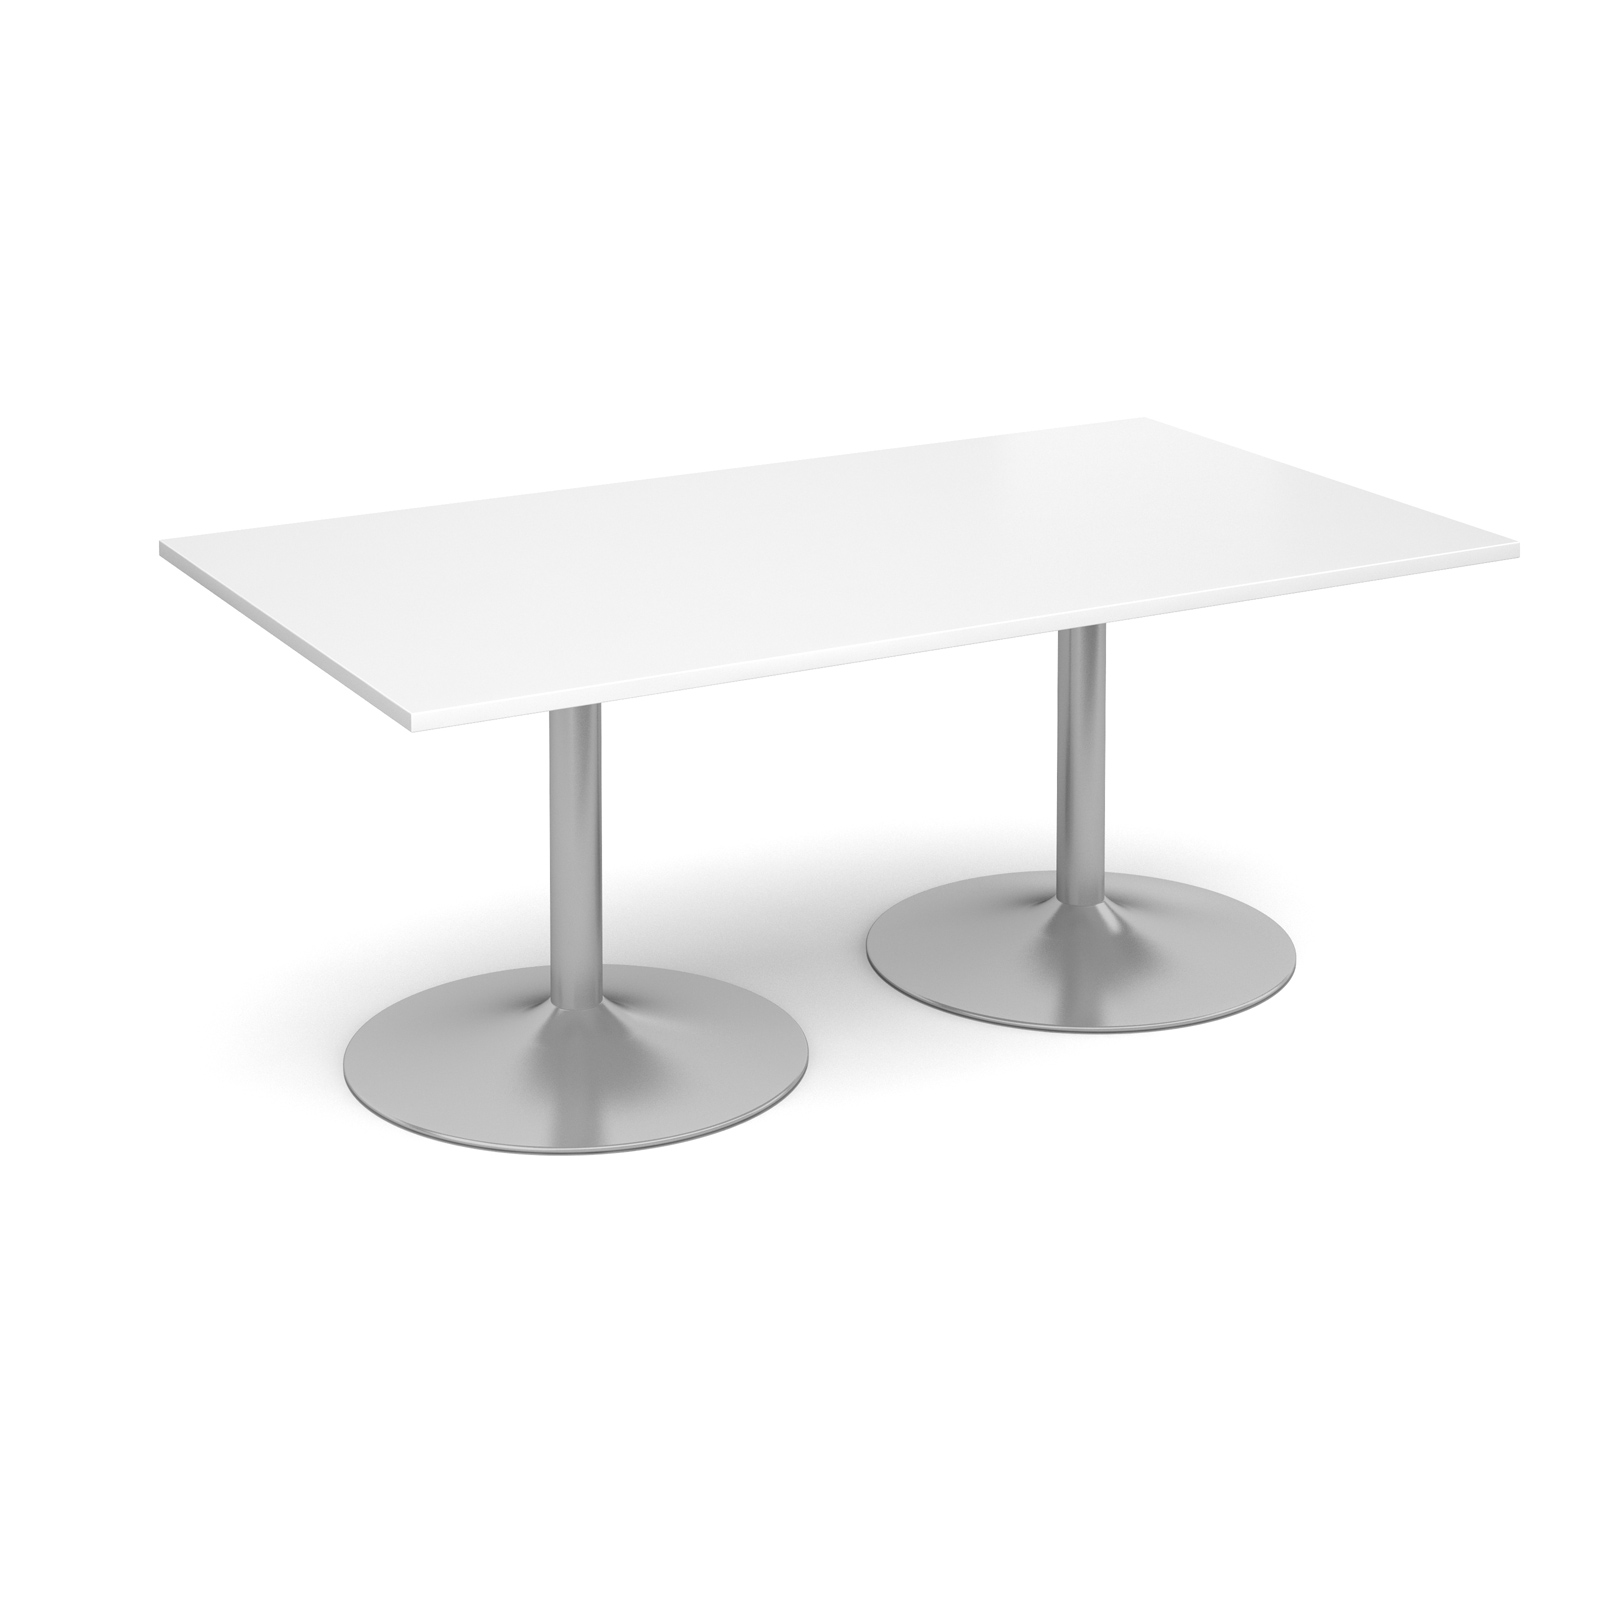 Image for 1800 Rect Trmpt Base B/Room Table 25 Wht